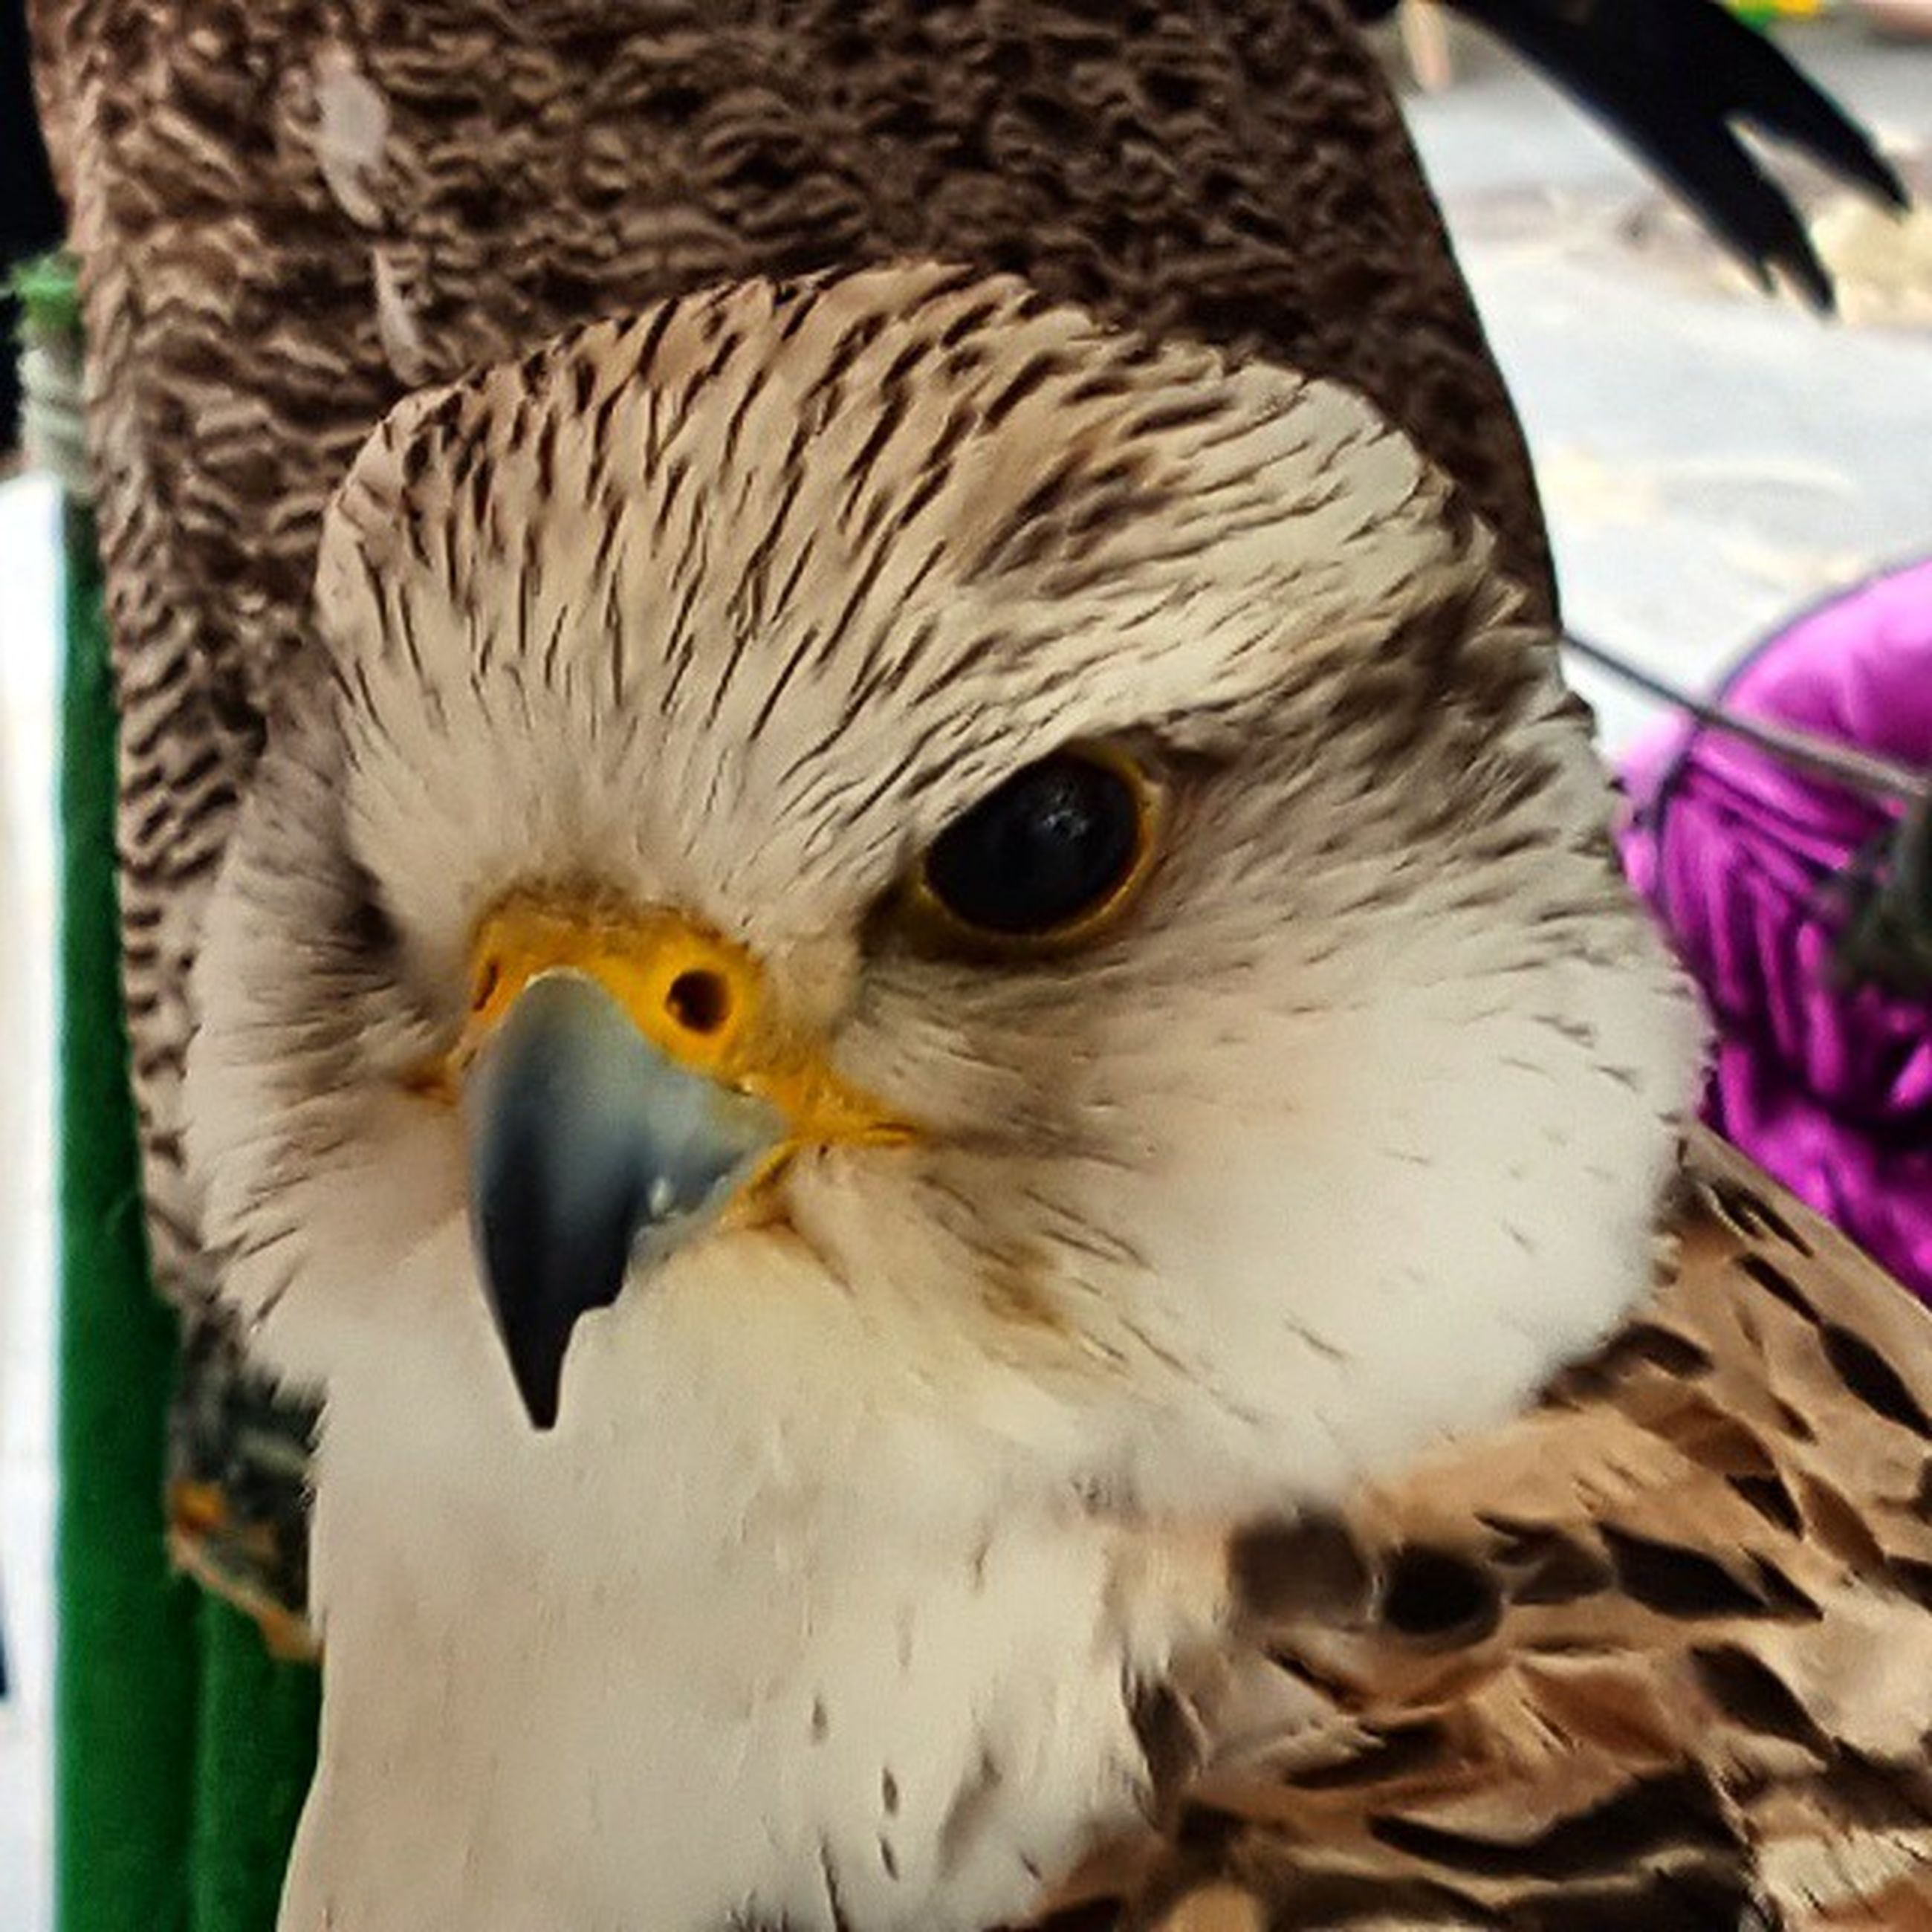 bird, animal themes, animals in the wild, one animal, beak, wildlife, close-up, animal head, focus on foreground, bird of prey, nature, portrait, looking at camera, outdoors, perching, front view, owl, day, no people